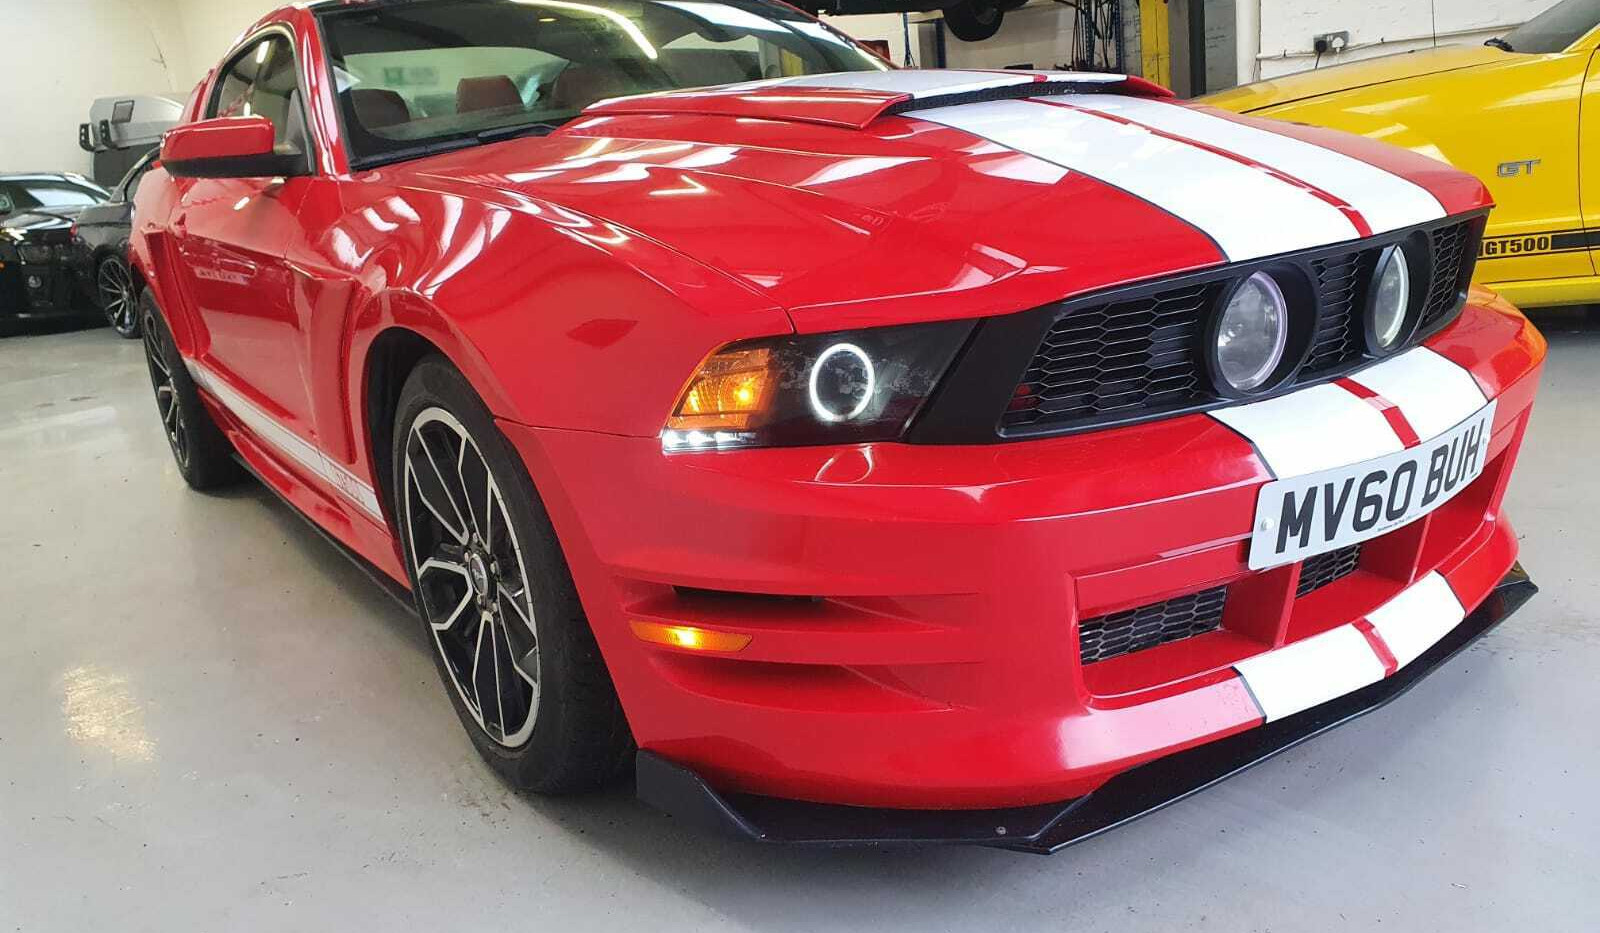 """2010 FORD MUSTANG GT500 - £18,495  V8 Facelift, fresh import!  - Automatic - 5.0 L - Coupe - Petrol - 2 Doors - 4 Seats  Amazing looking, sounding, and driving sports coupe.  5.0 GT V8 powertrain, 412 bhp sounds wonderful, glass panoramic roof, twin sports exhaust, cold air induction kit, upgraded headlamps, 19"""" wheels  Full GT bodykit and GT500 body stripes in Atlantic White  Finished in torch red with matching brick-read leather interior/ivory stripe inserts"""